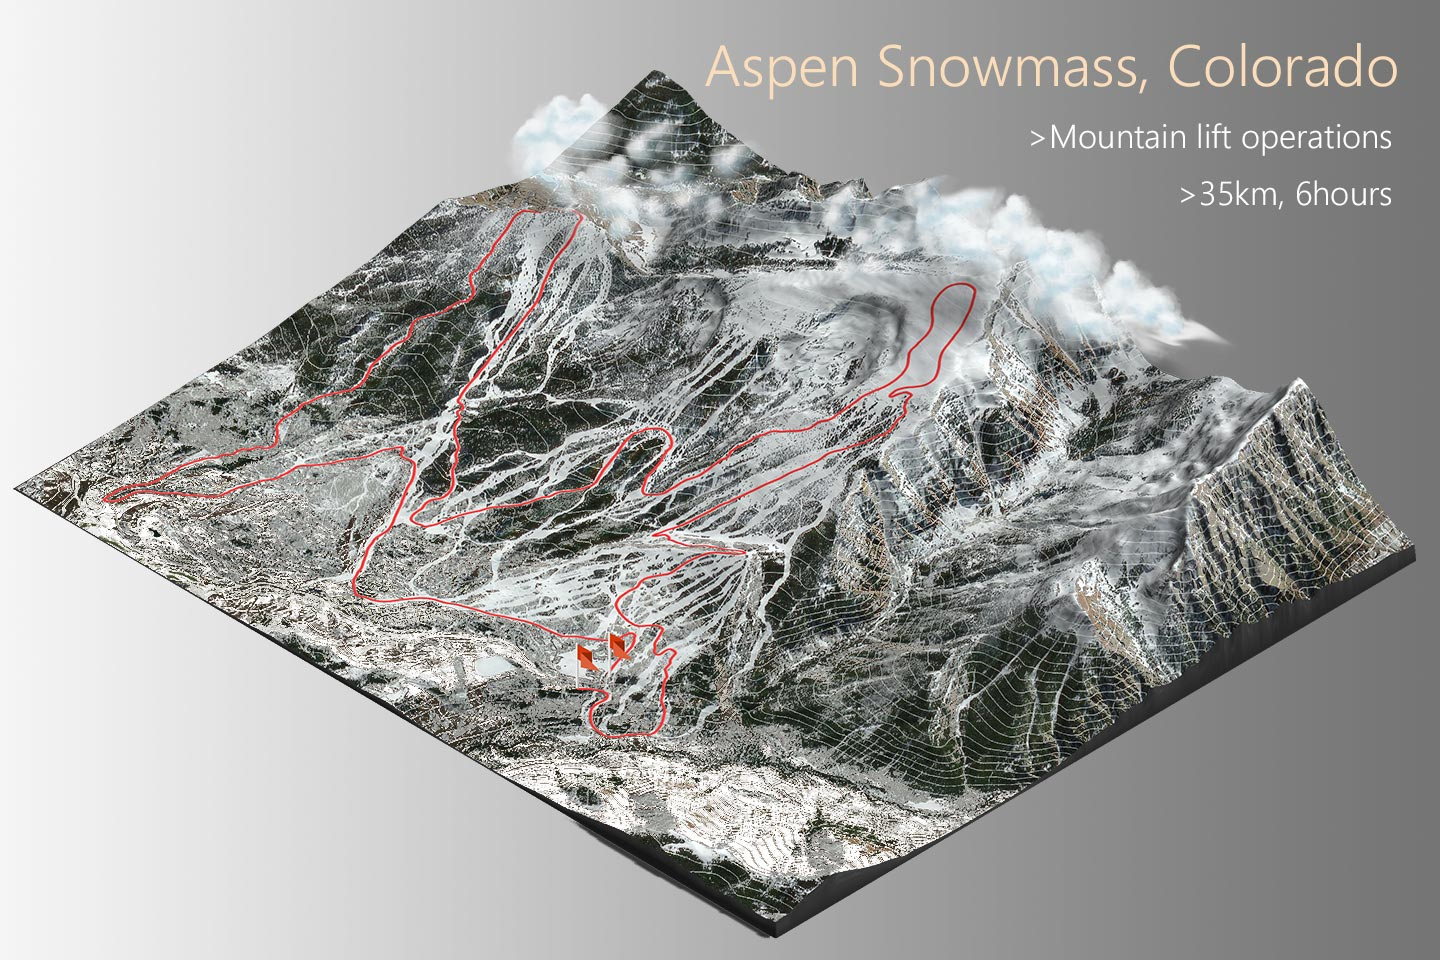 Taiga - Aspen's route. Photo by Taiga Motors. Aspen Skiing Company Announces New Partnership with Taiga Motors